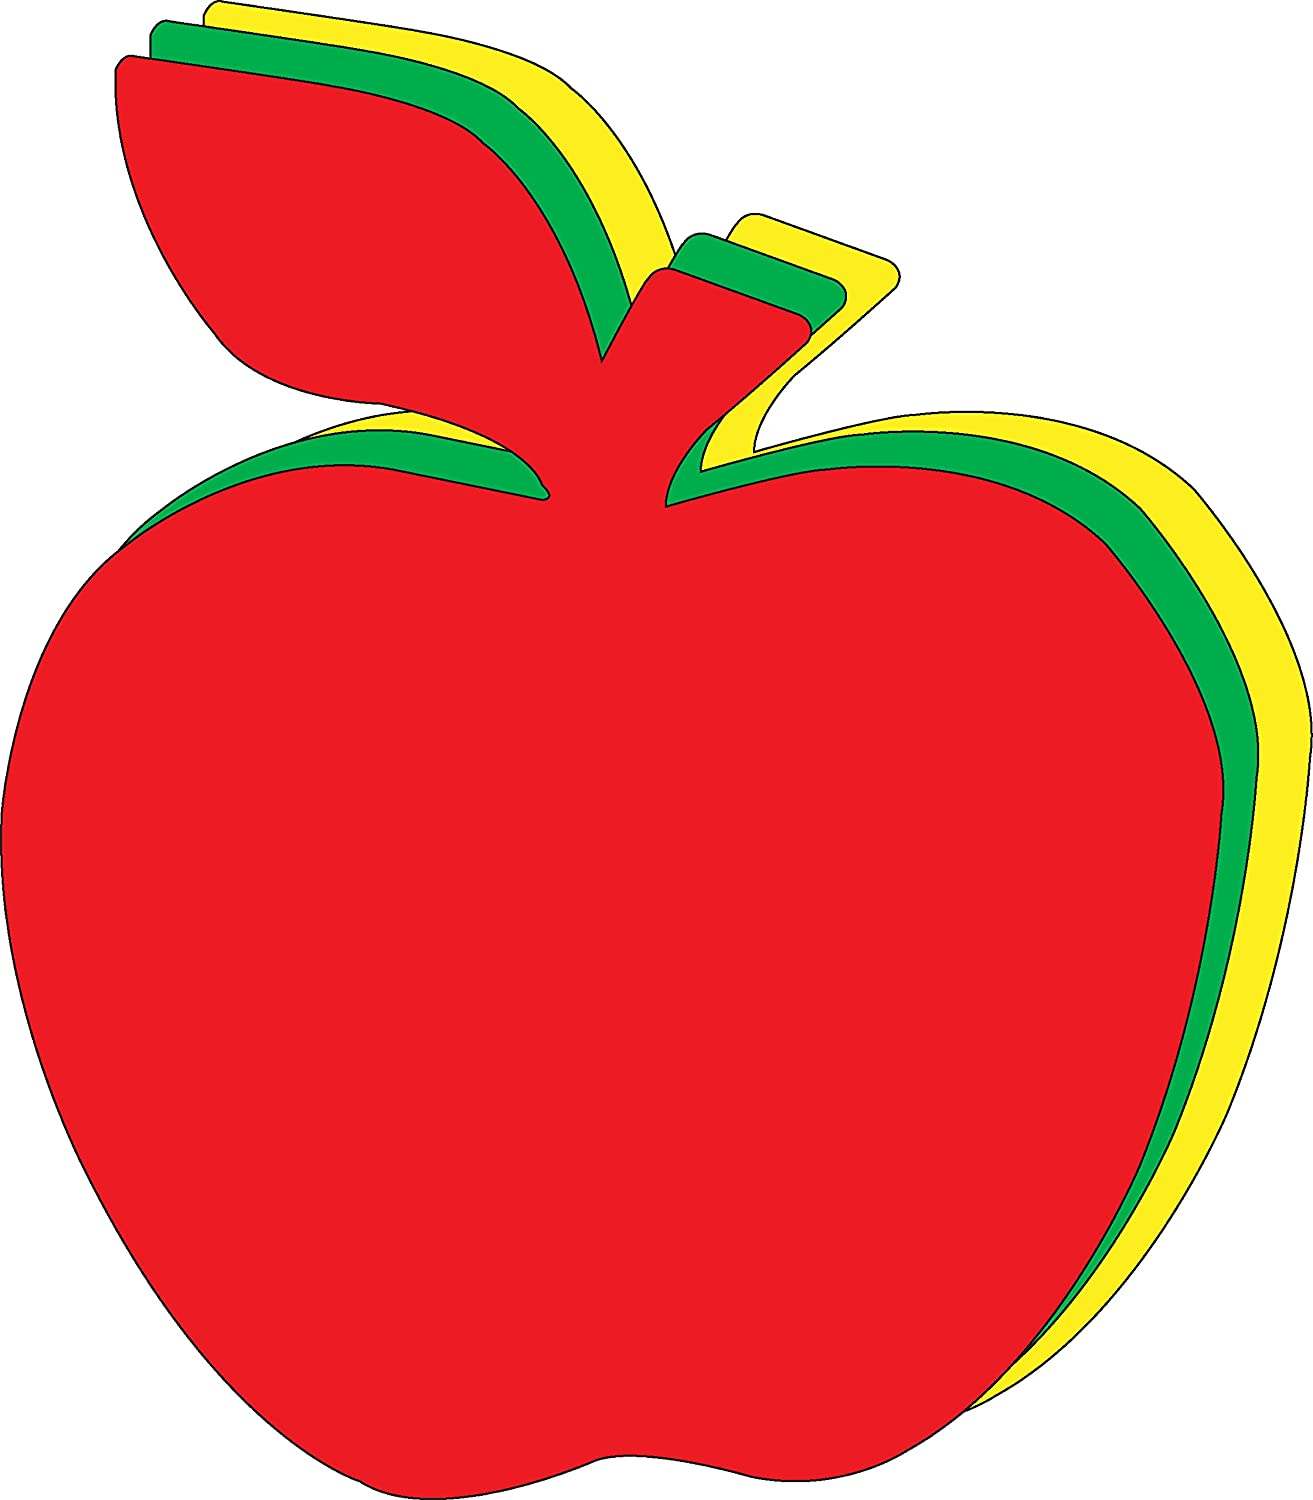 """8"""" x 10"""" Apple Tri-Color Super Cut-Outs, 15 Cut-Outs in a Pack for Fall, Harvest, Autumn Crafts, Back to School, Kids' School Craft Projects"""